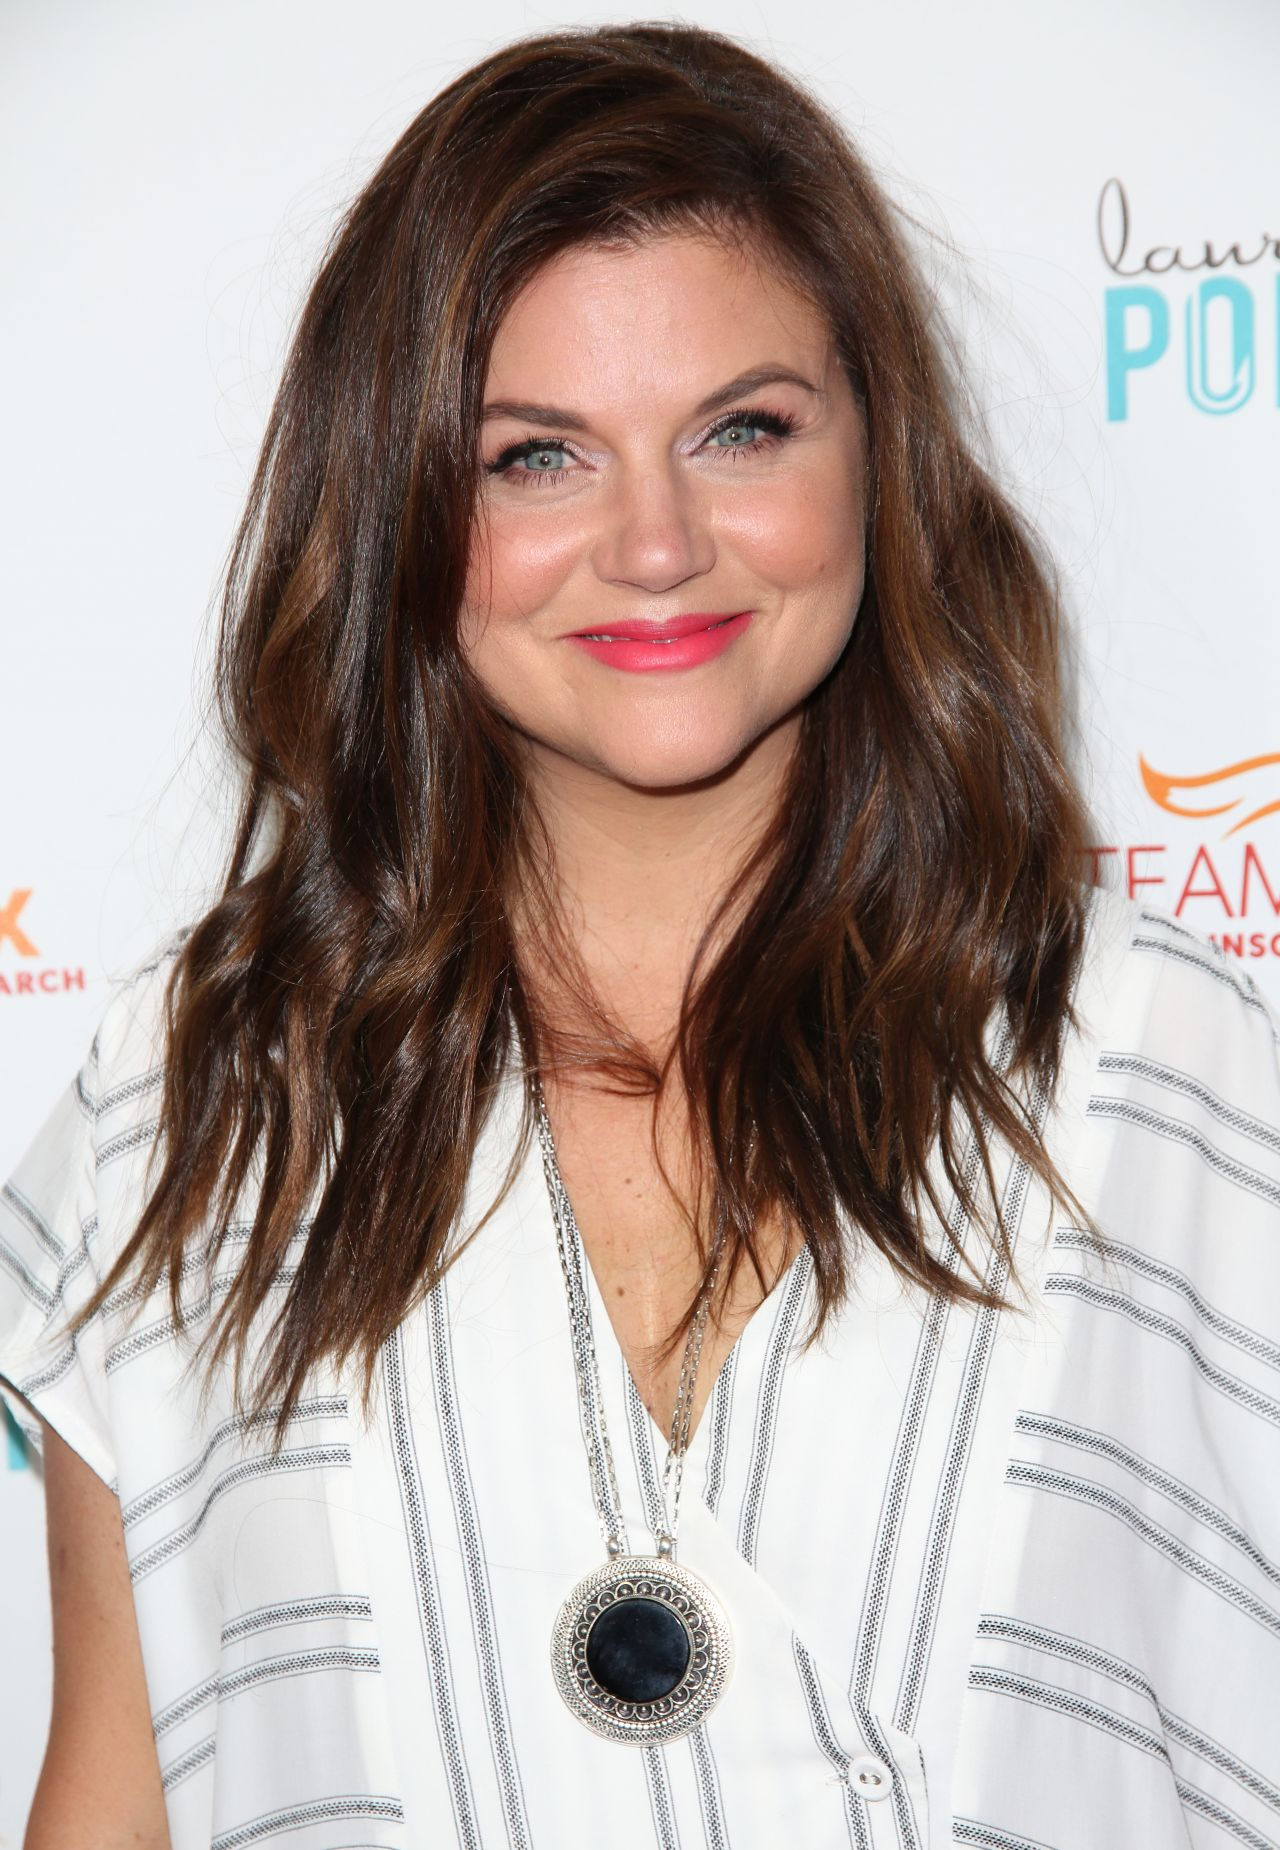 Tiffani Thiessen Raising The Bar To End Parkinsons